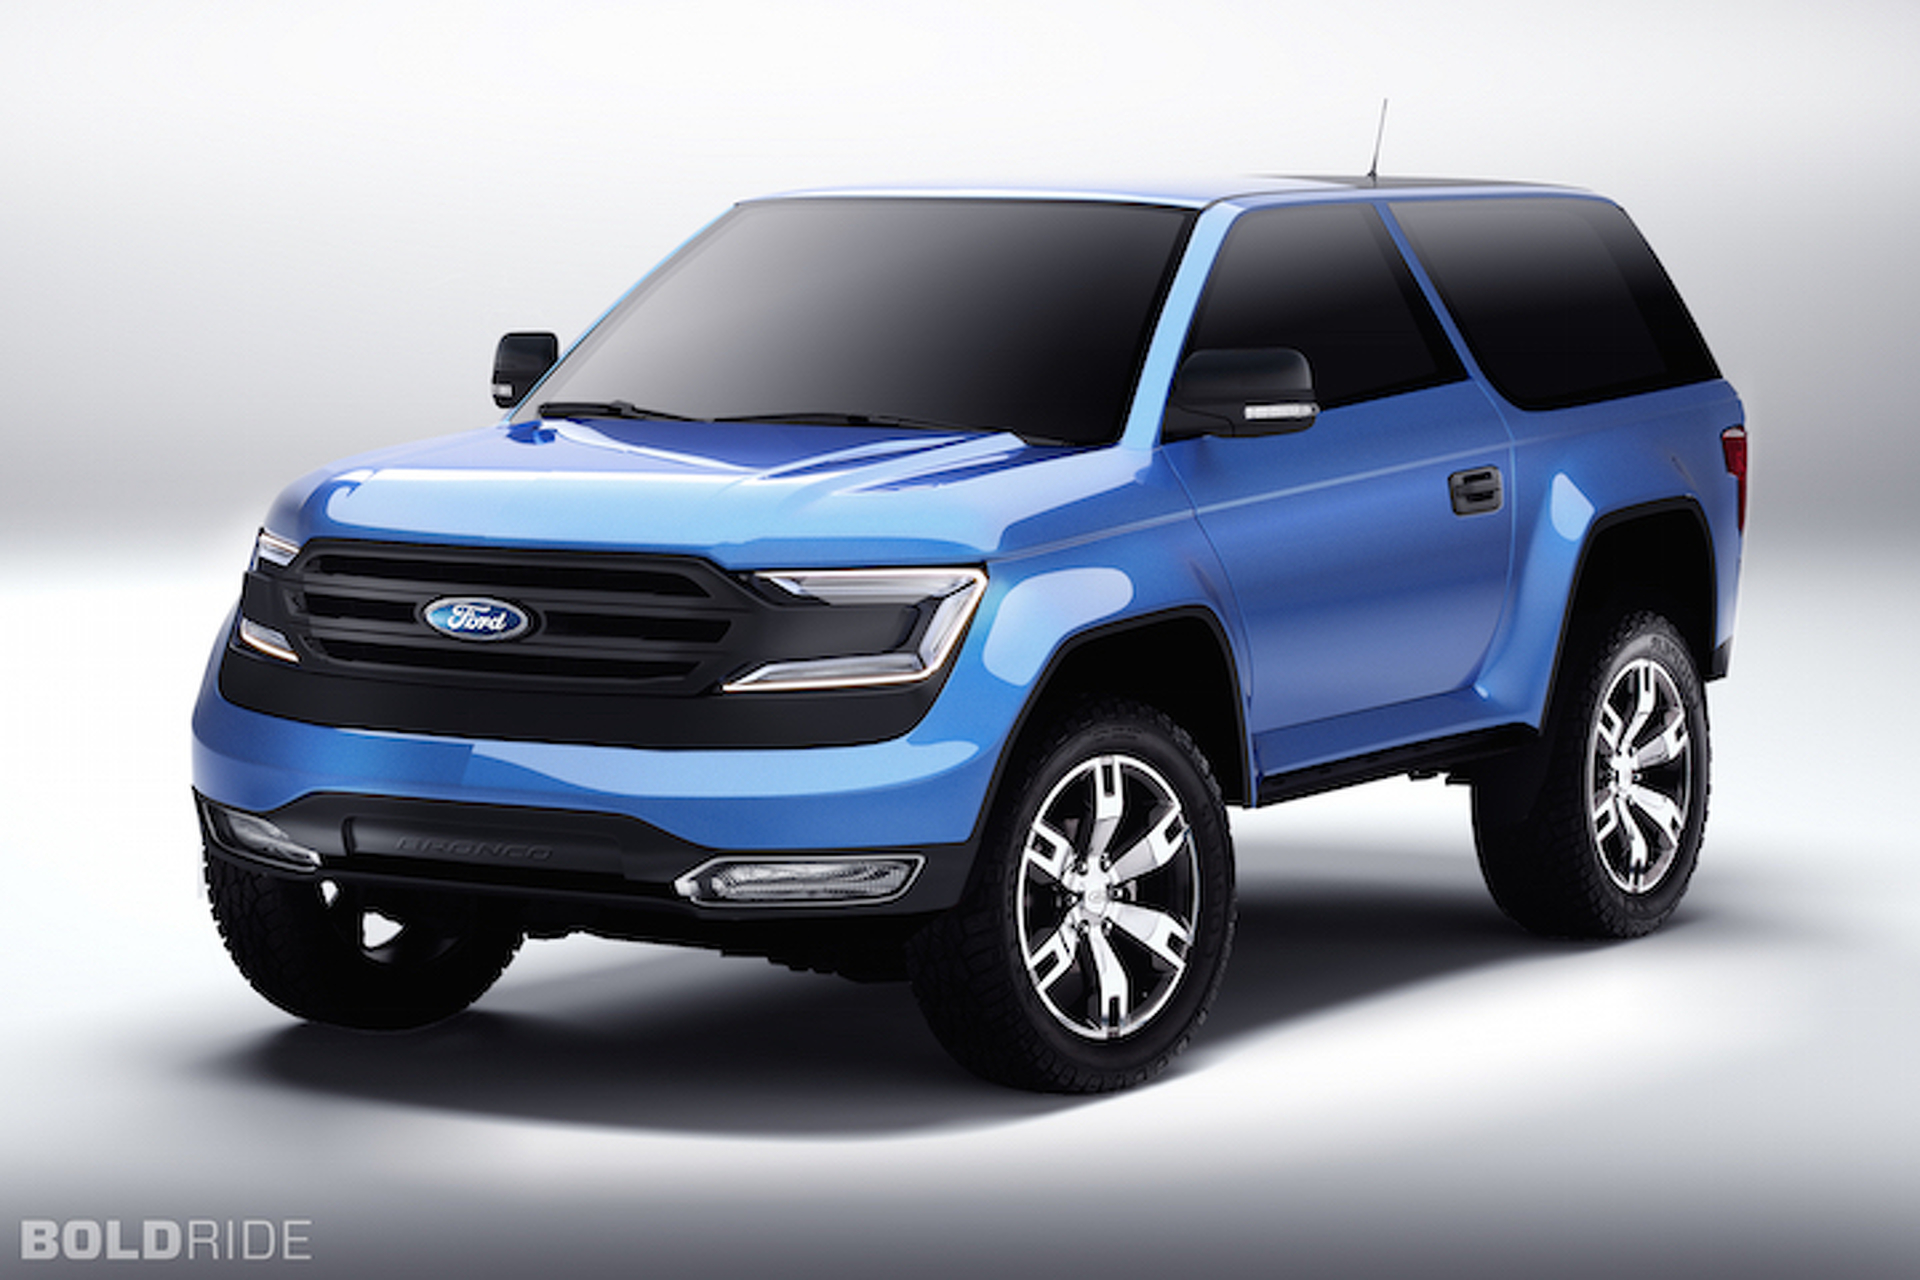 2016 Ford Bronco Price >> 4 Things To Know About The 2017 Ford Bronco When It Returns